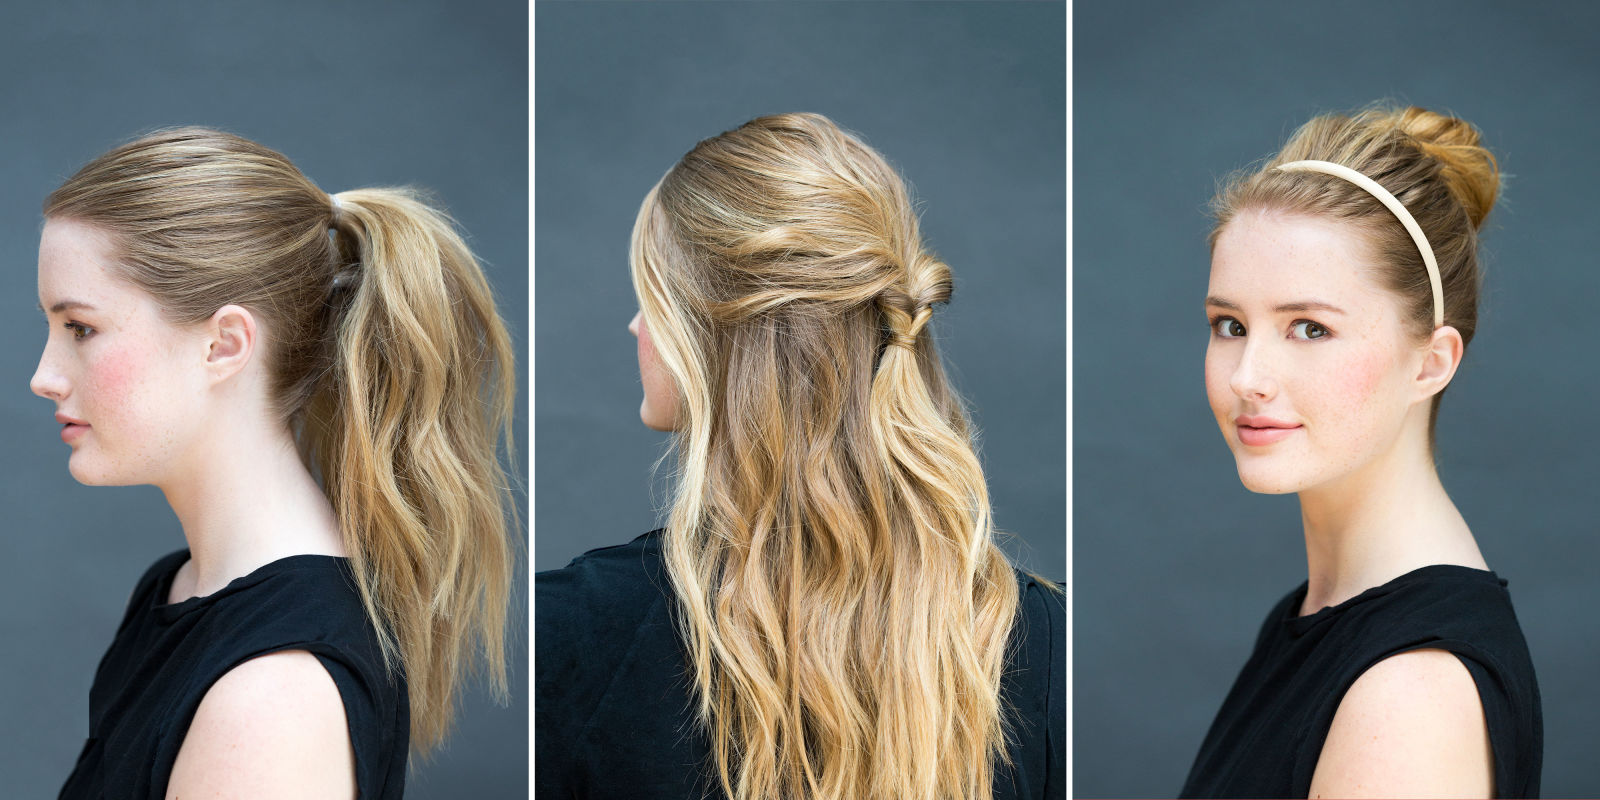 Hairstyles You Can Do in Literally